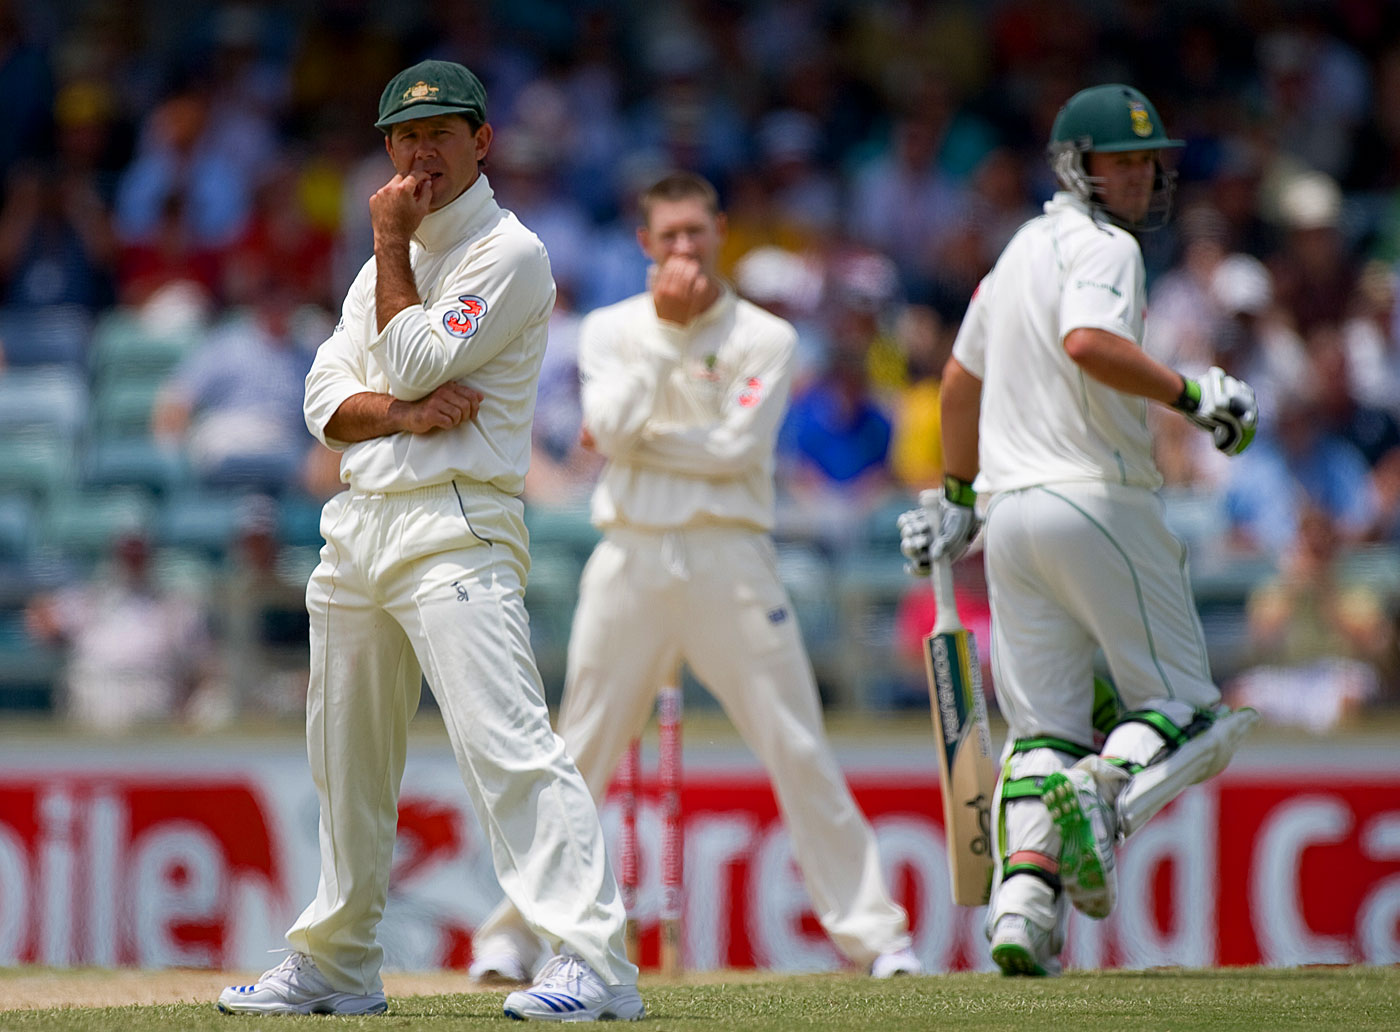 In 2008, a target of 414 was tackled with ease by South Africa in Perth, breaking a world record. Four years earlier, up against a similar stiff target in a Test in Durban, they had played it safe